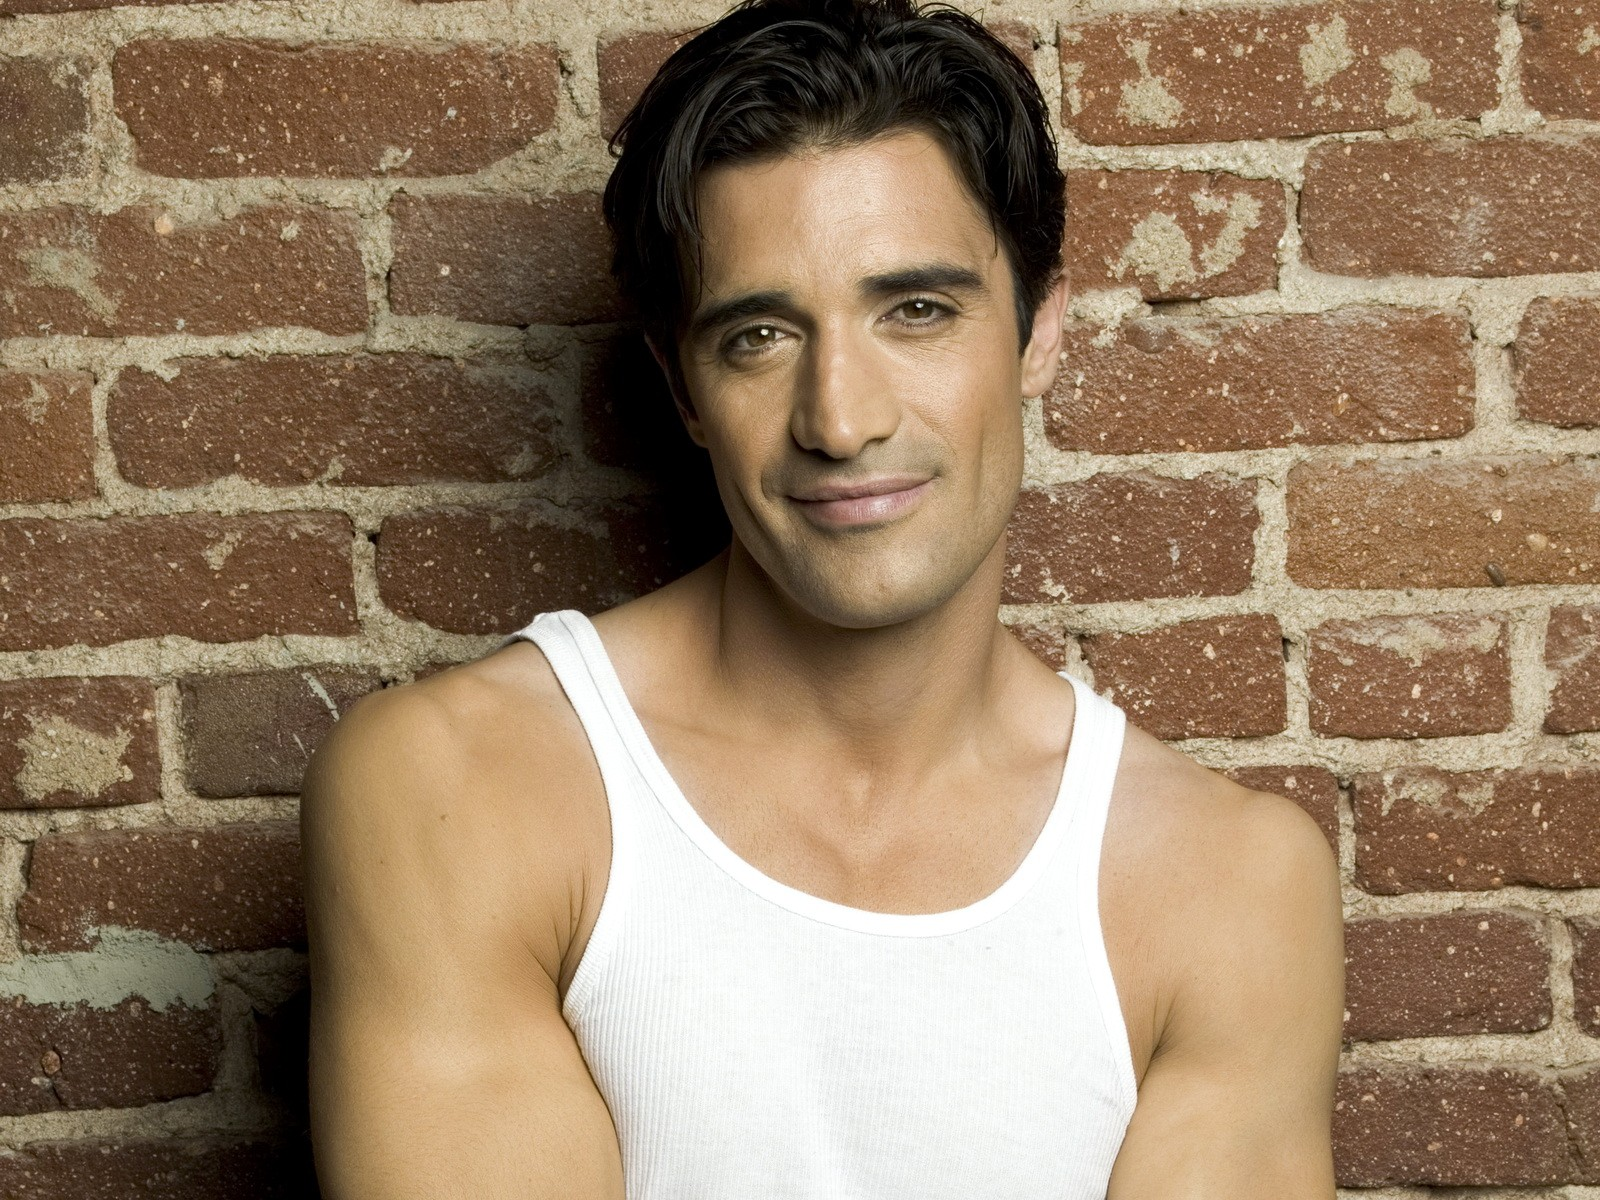 gilles marini dancing with the starsgilles marini 2017, gilles marini instagram, gilles marini 2016, gilles marini, gilles marini dancing with the stars, gilles marini imdb, gilles marini twitter, gilles marini son, gilles marini facebook, gilles marini criminal minds, gilles marini wife, gilles marini shower scene, gilles marini devious maids, gilles marini net worth